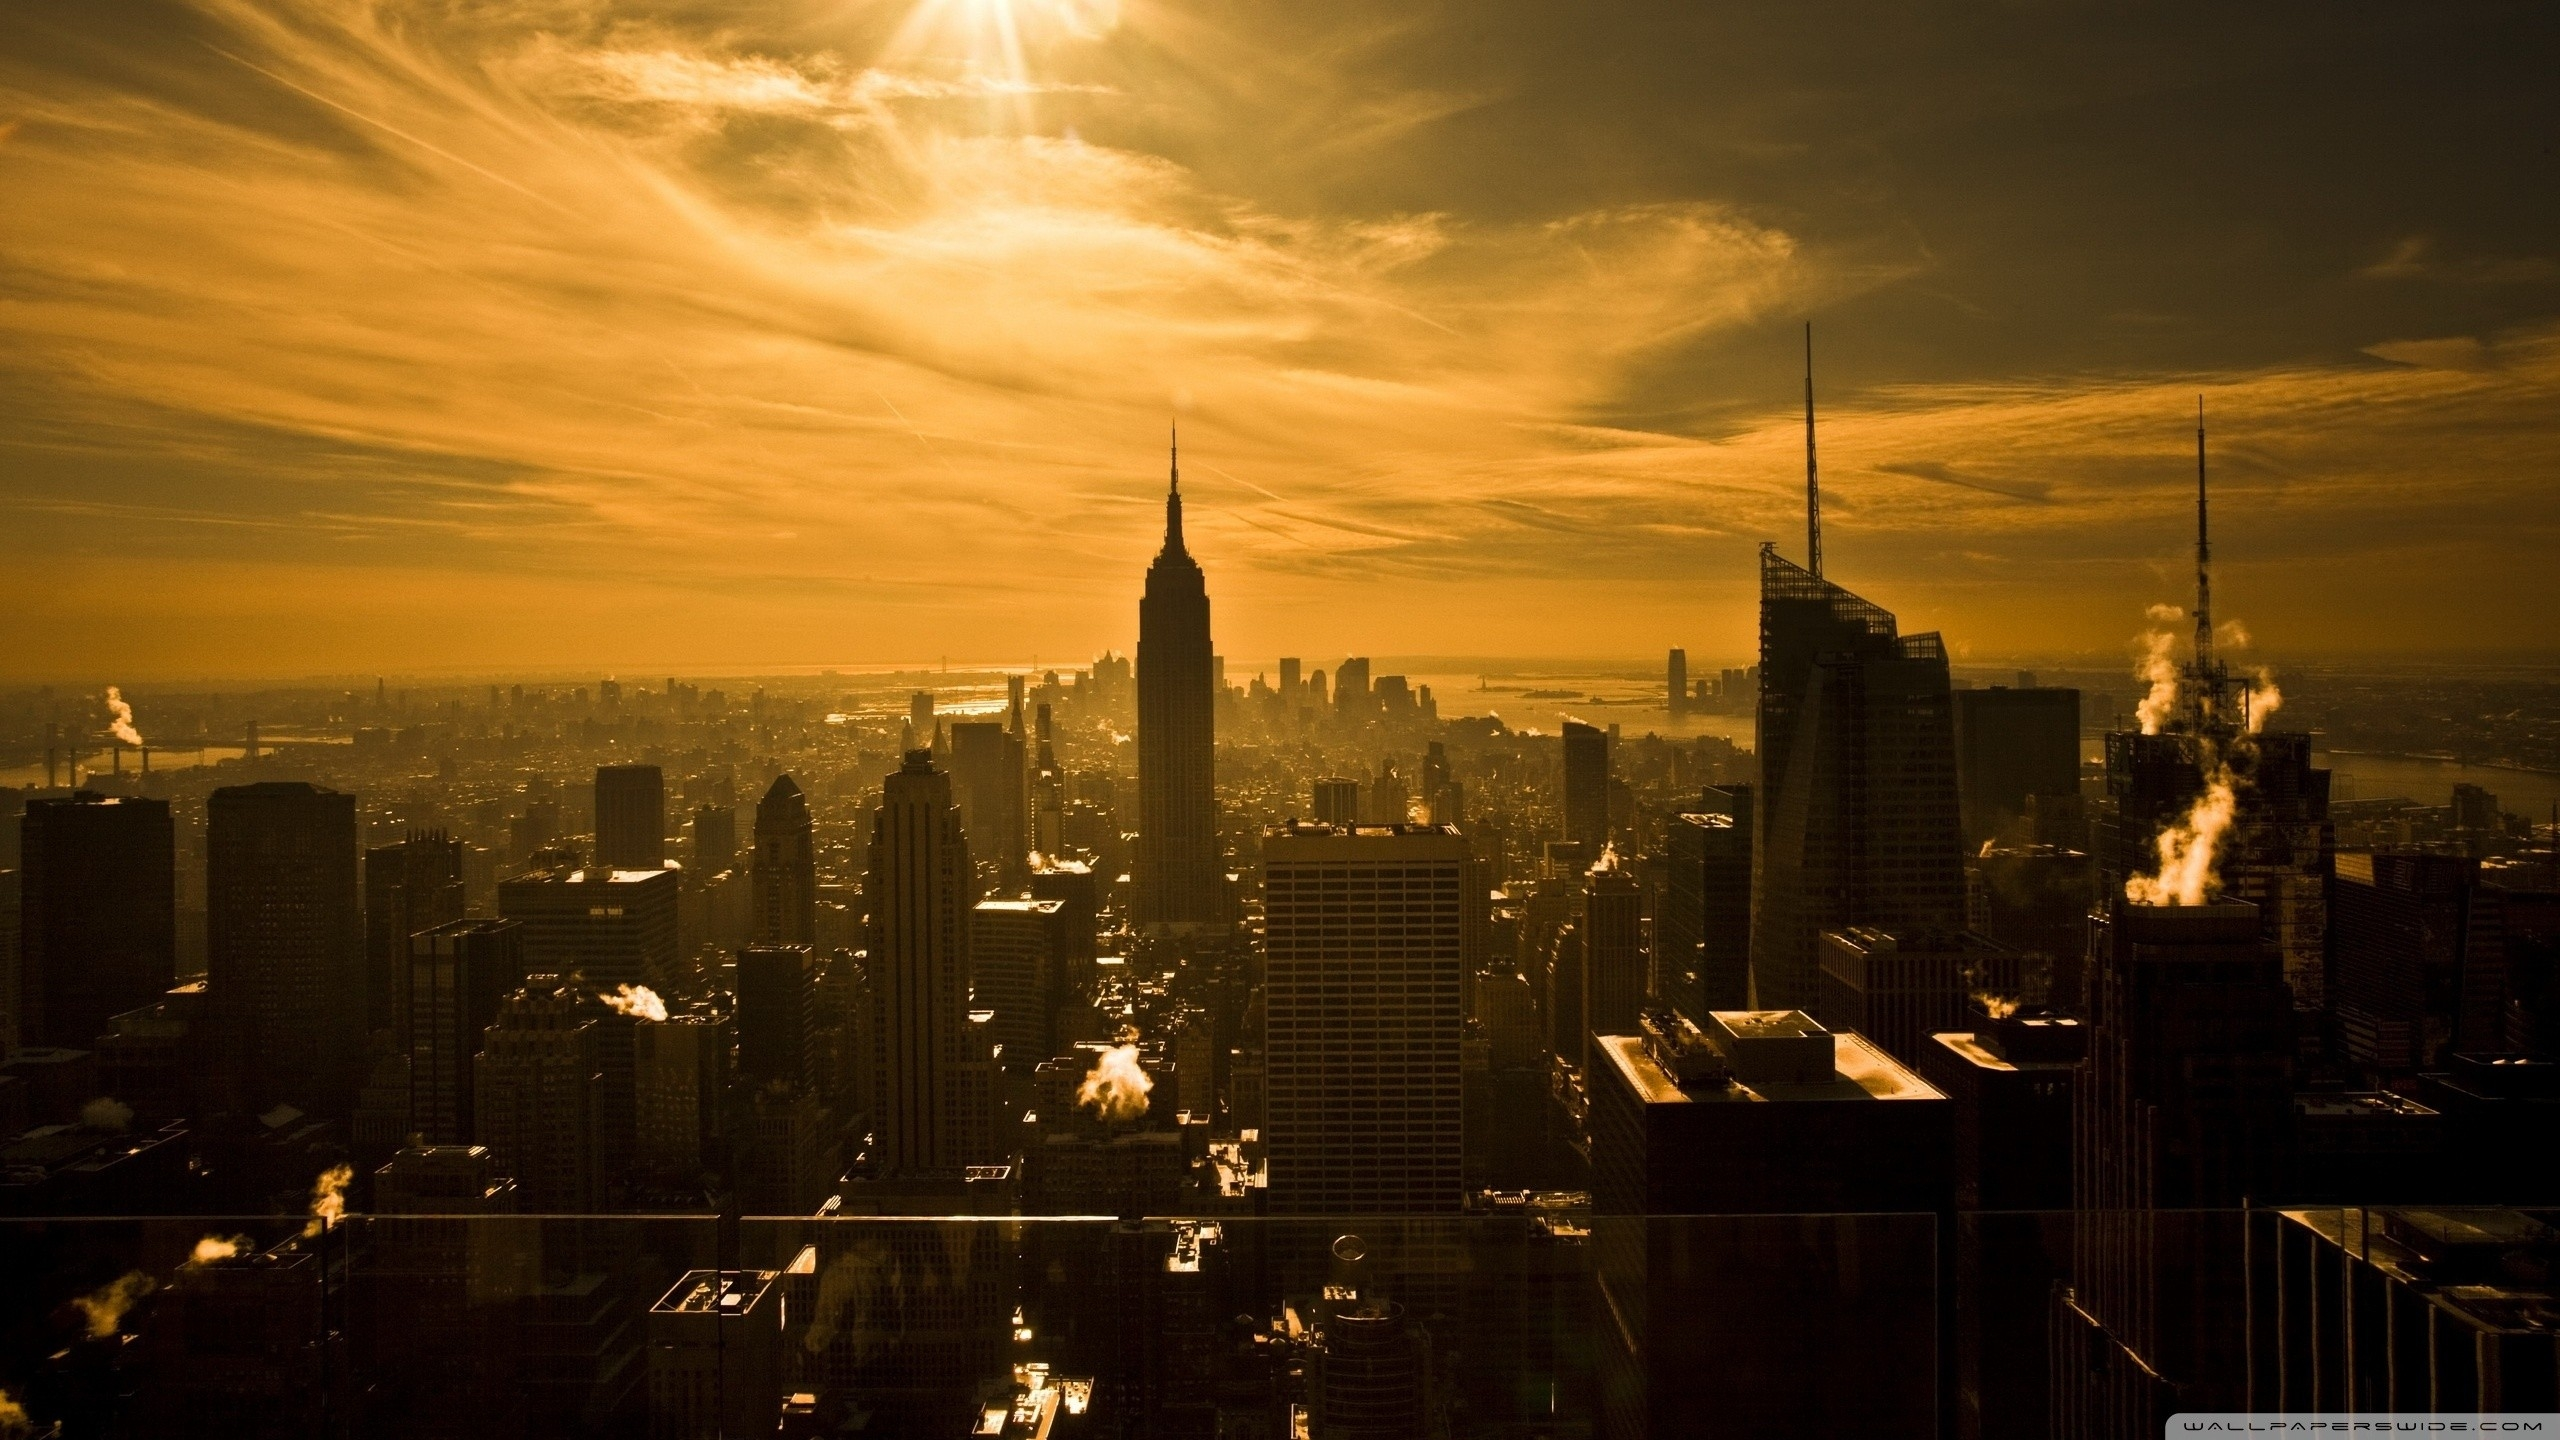 Download Wallpapers Download 2560x1440 new york city 2560x1440